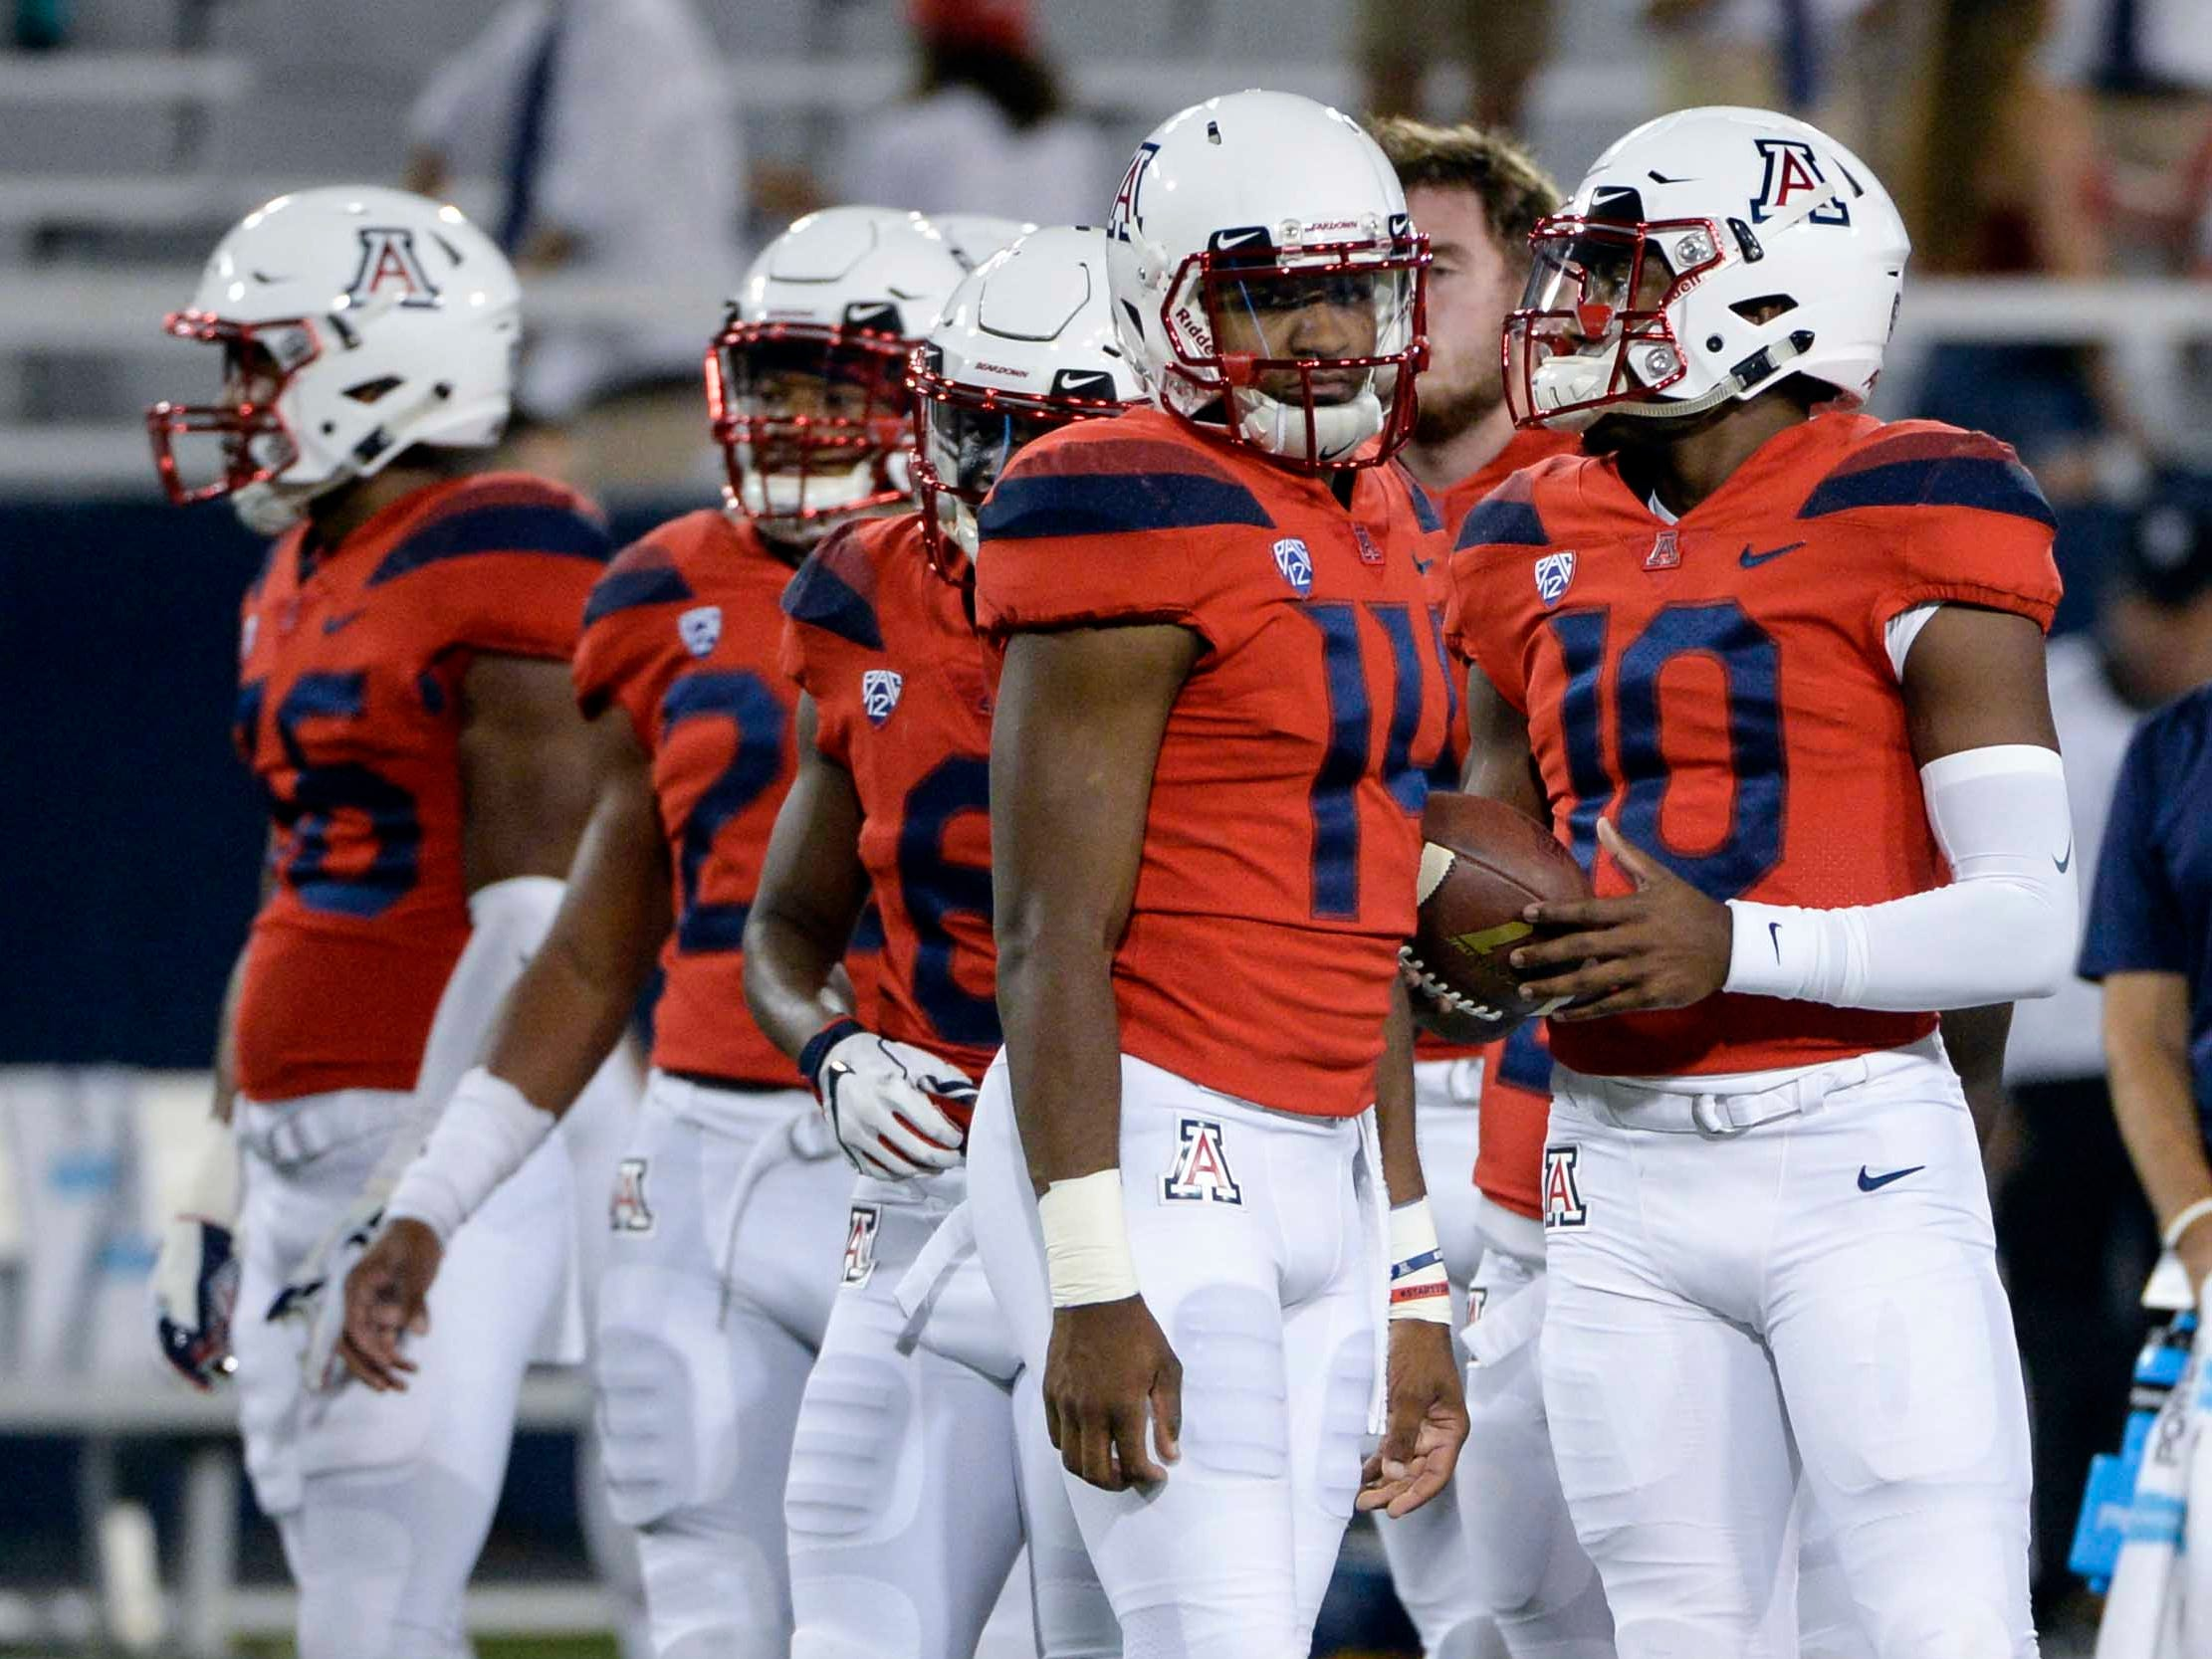 Oct 6, 2018; Tucson, AZ, USA; Arizona Wildcats quarterback Khalil Tate (14) and quarterback Jamarye Joiner (10) (right) warm up before playing the California Golden Bears at Arizona Stadium. Mandatory Credit: Casey Sapio-USA TODAY Sports